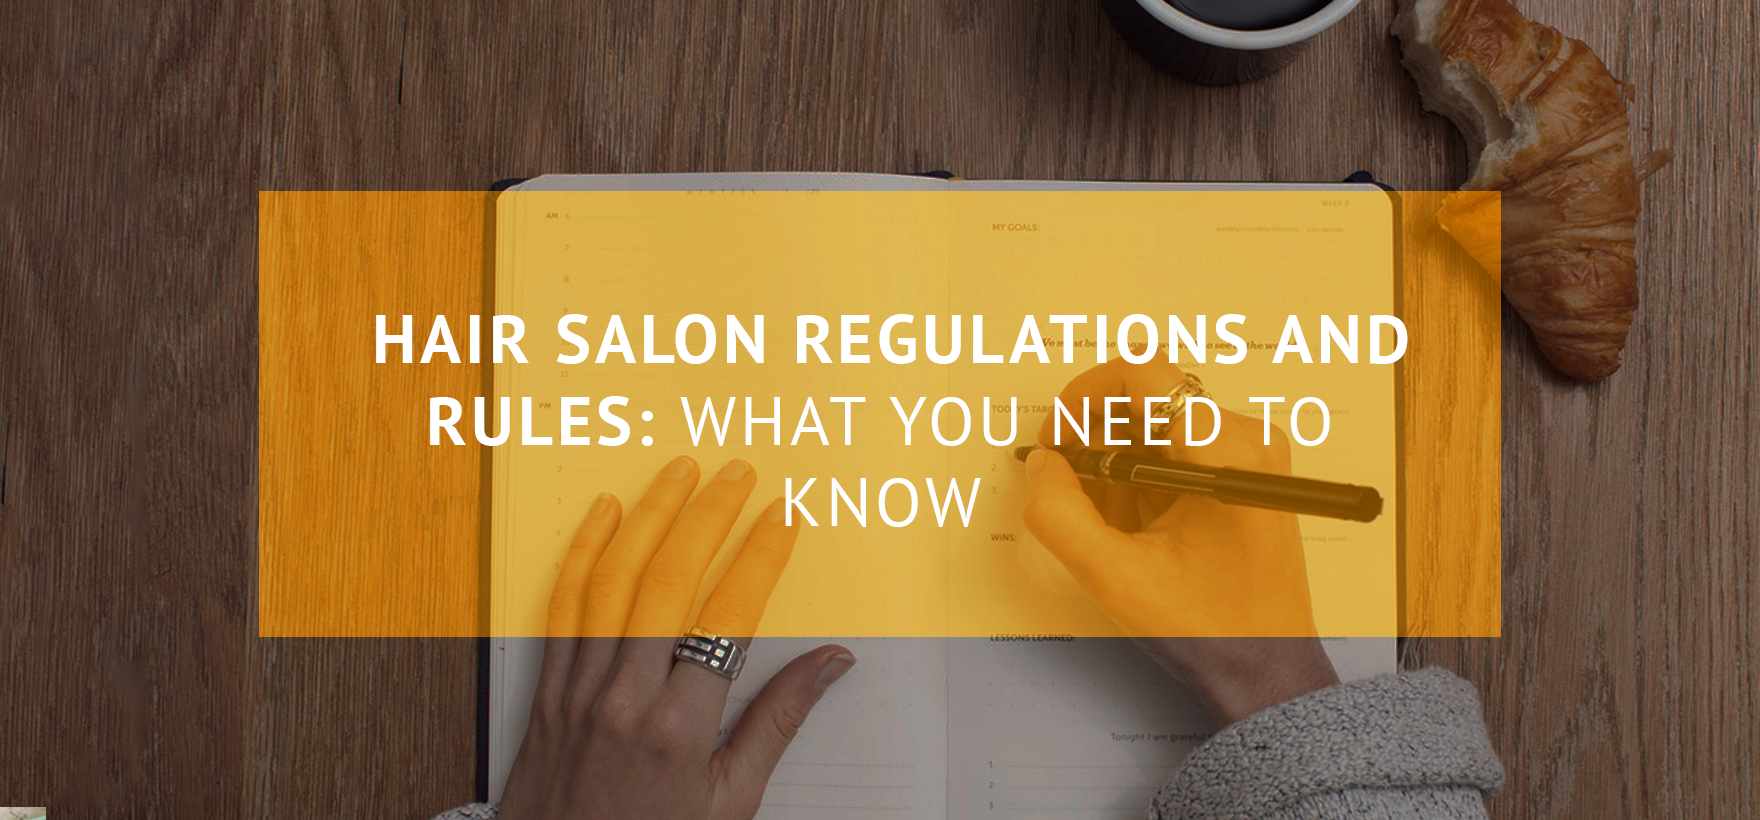 Hair Salon Regulations and Rules: What You Need to Know